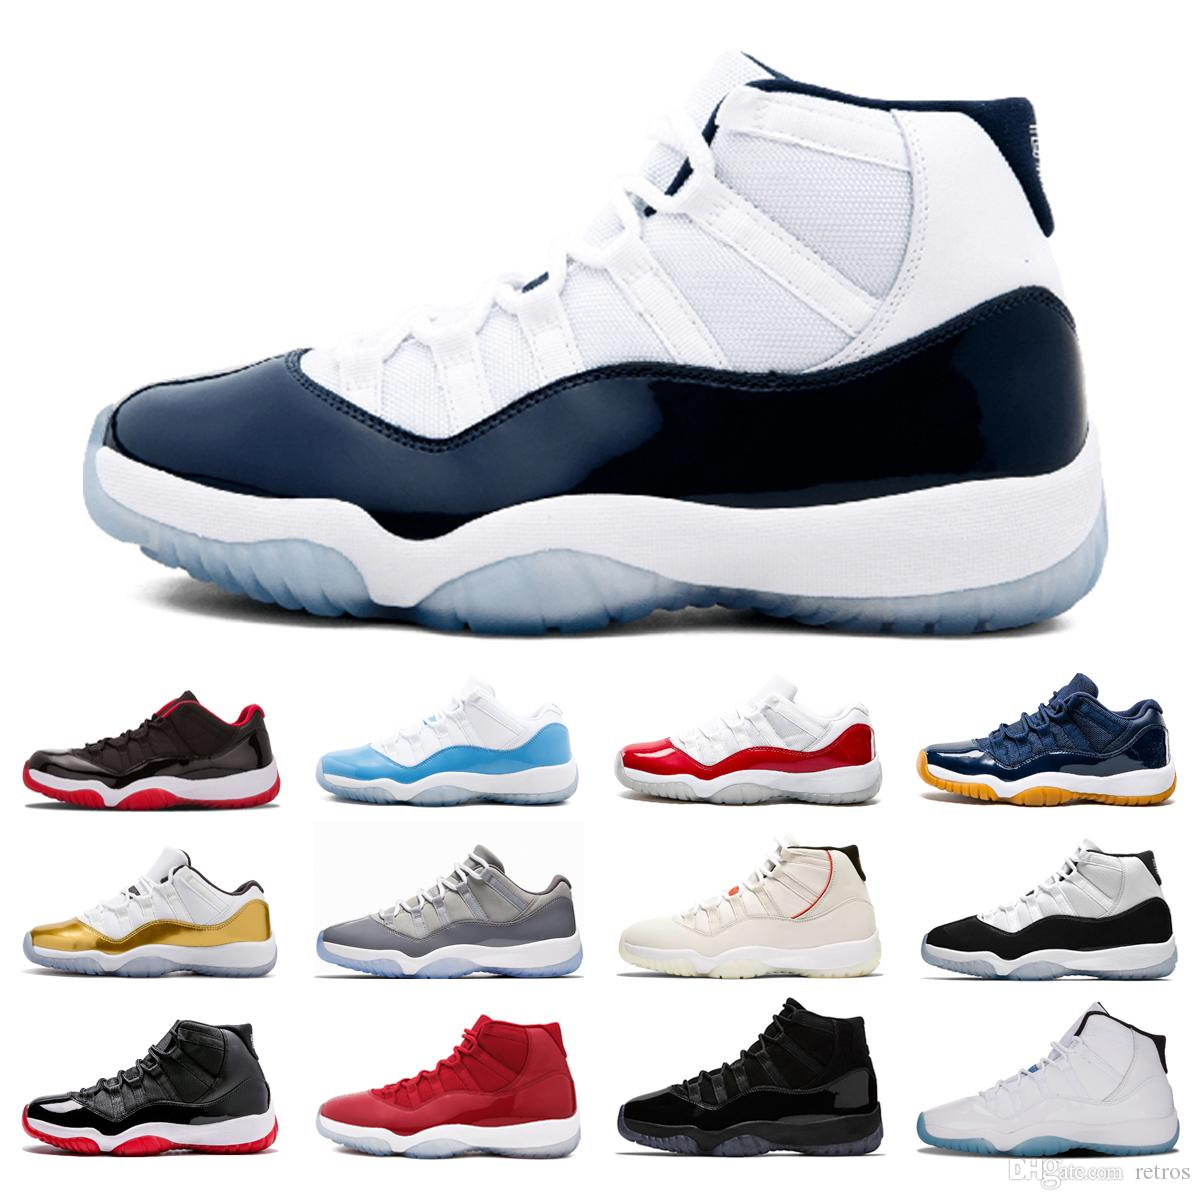 newest 0747e 02b7d Hot Top Mens Basketball Shoes Concord 11s Platinum Tint Navy gum Bred  Trainer sport sneakers women Prom Night Cap and Gown legend trainers